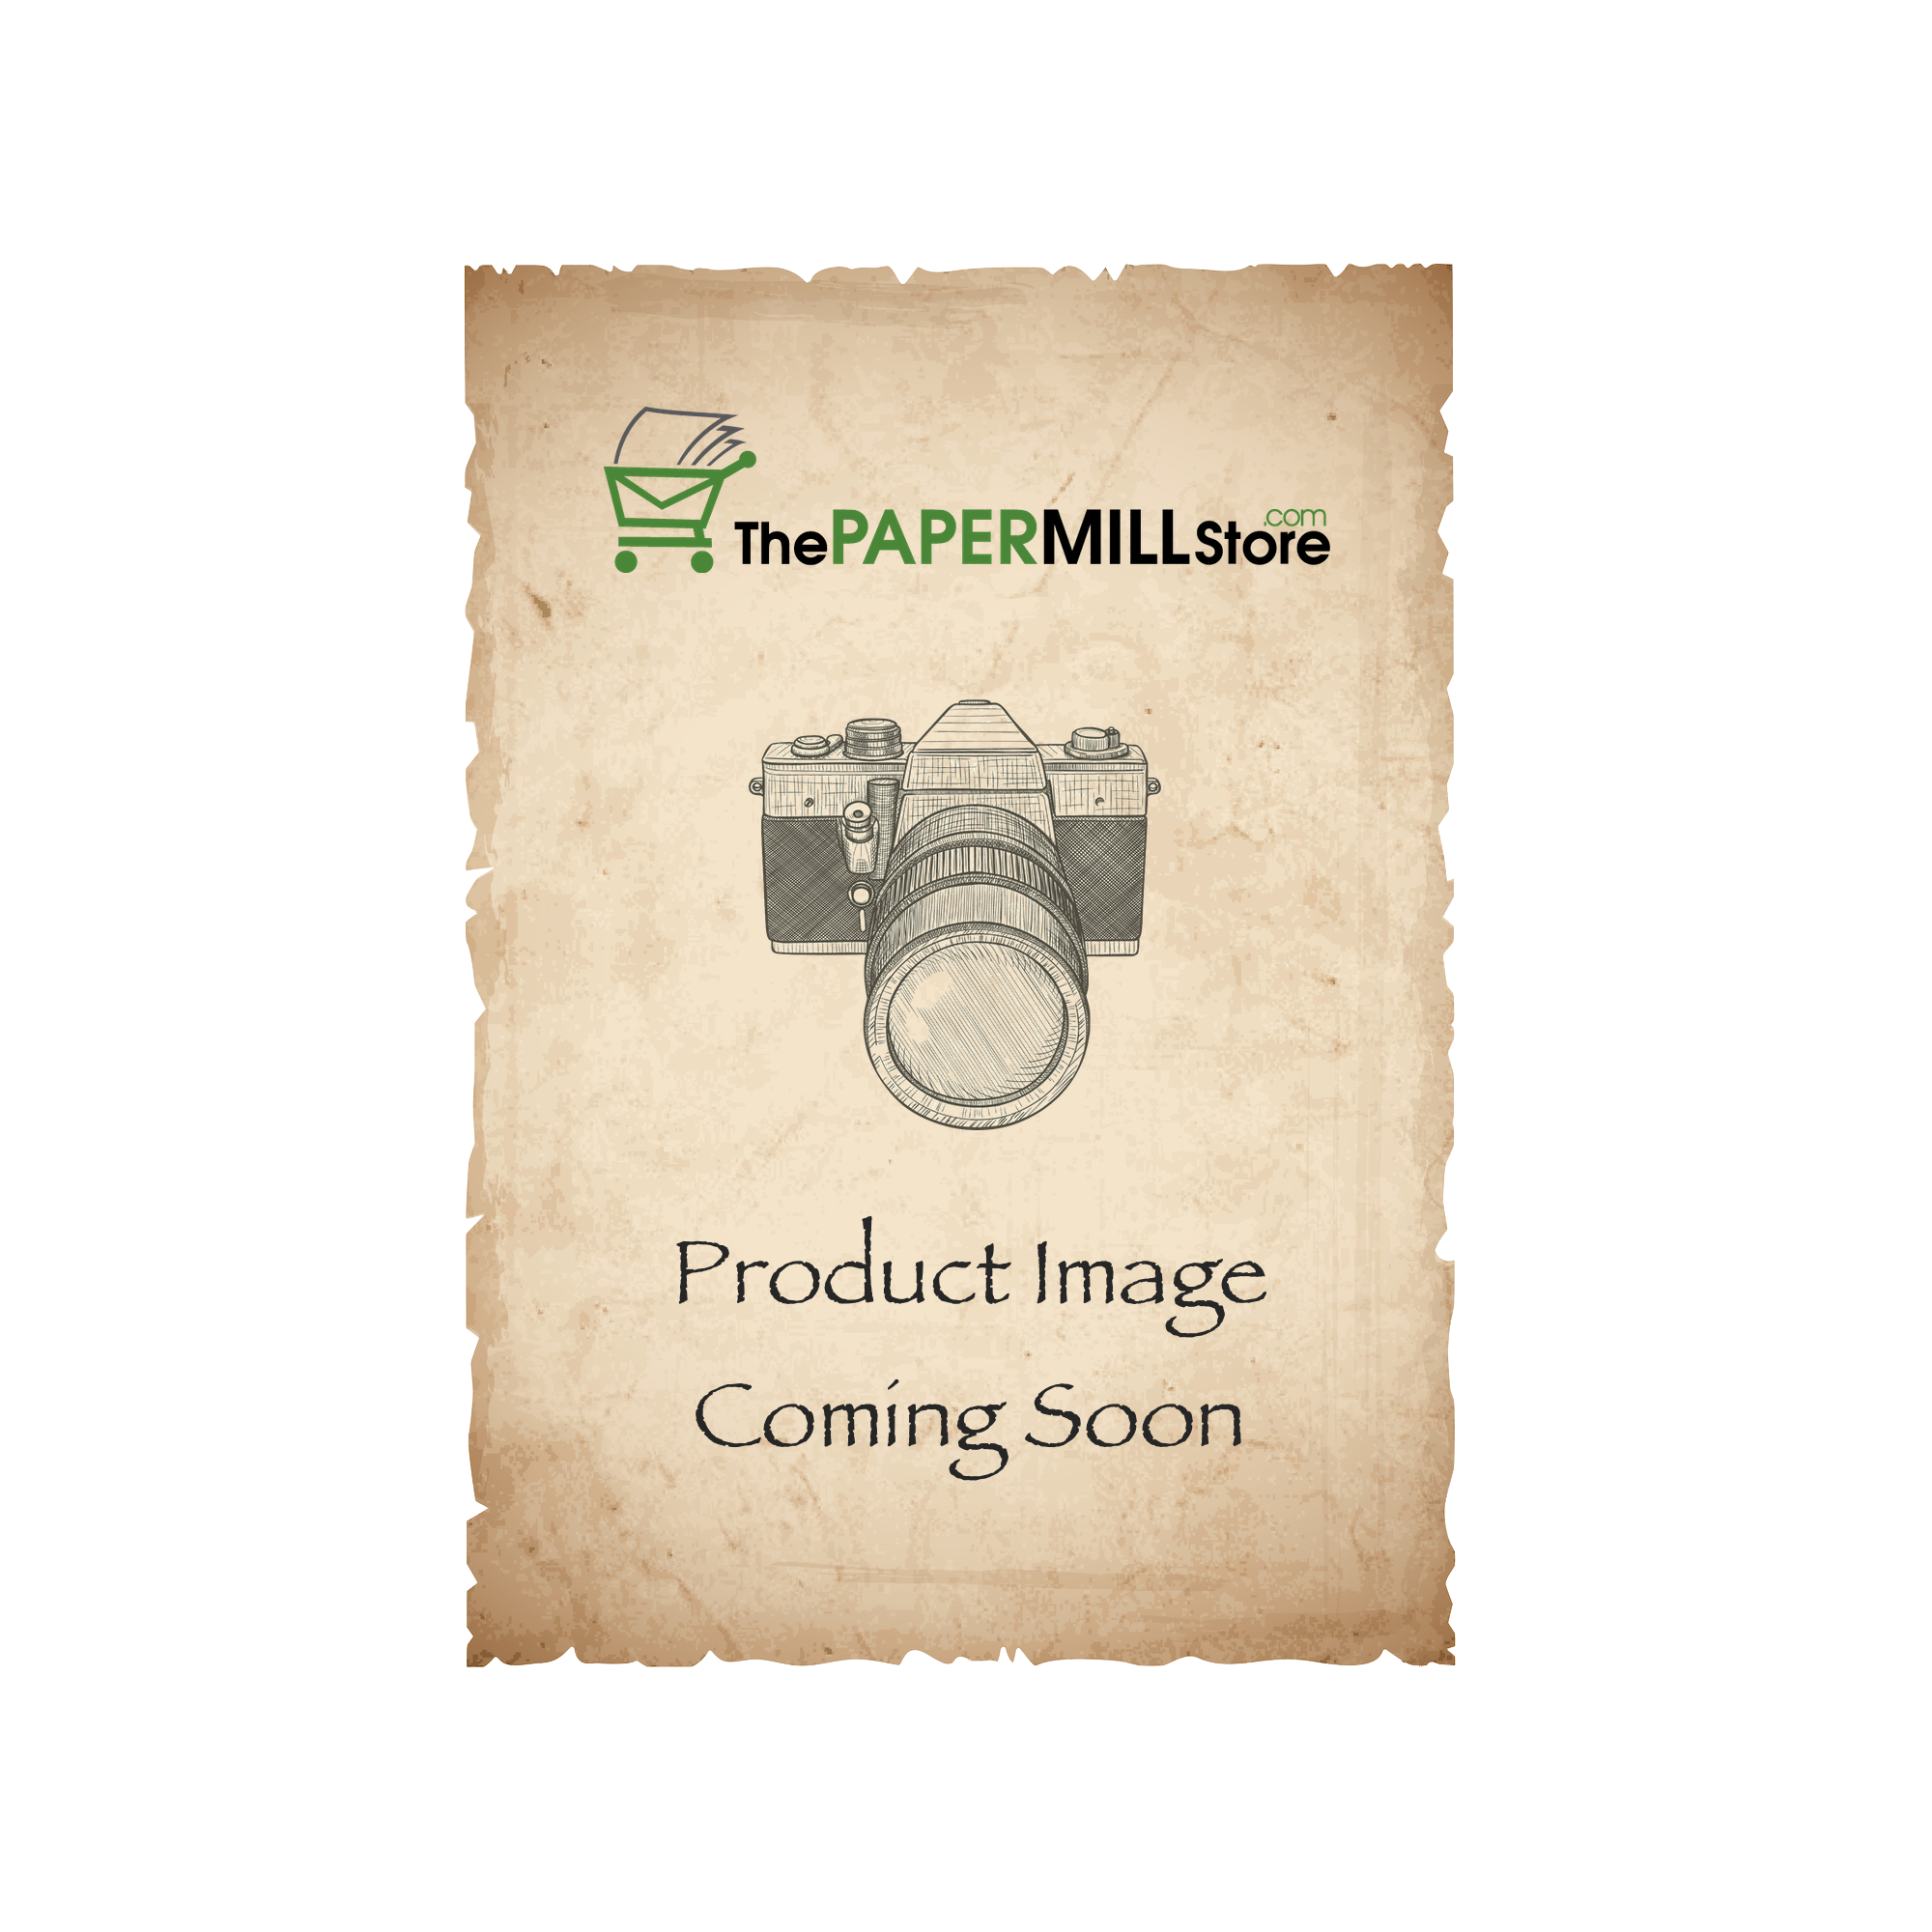 Loop Inxwell i-Tone Eco Cream Paper - 19 x 13 in 110 lb Cover DT Vellum  100% Recycled 250 per Package